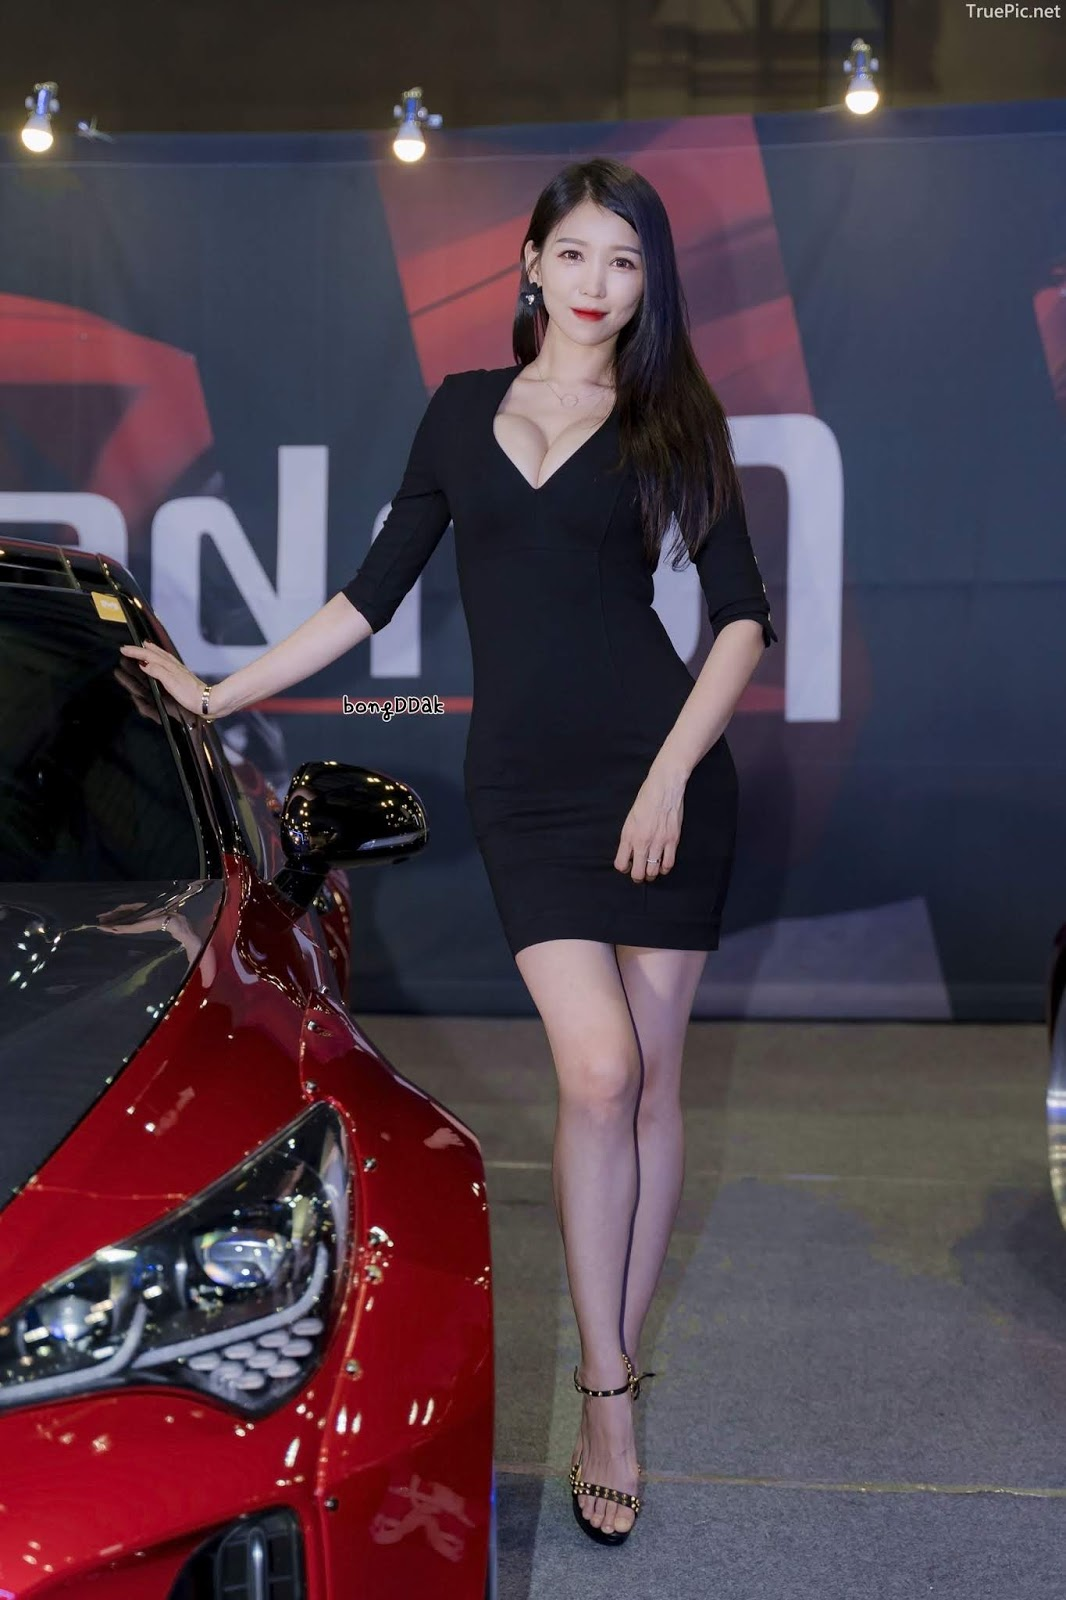 Korean Racing Model - Lee Eunhye - Seoul Auto Salon 2019 - Picture 1